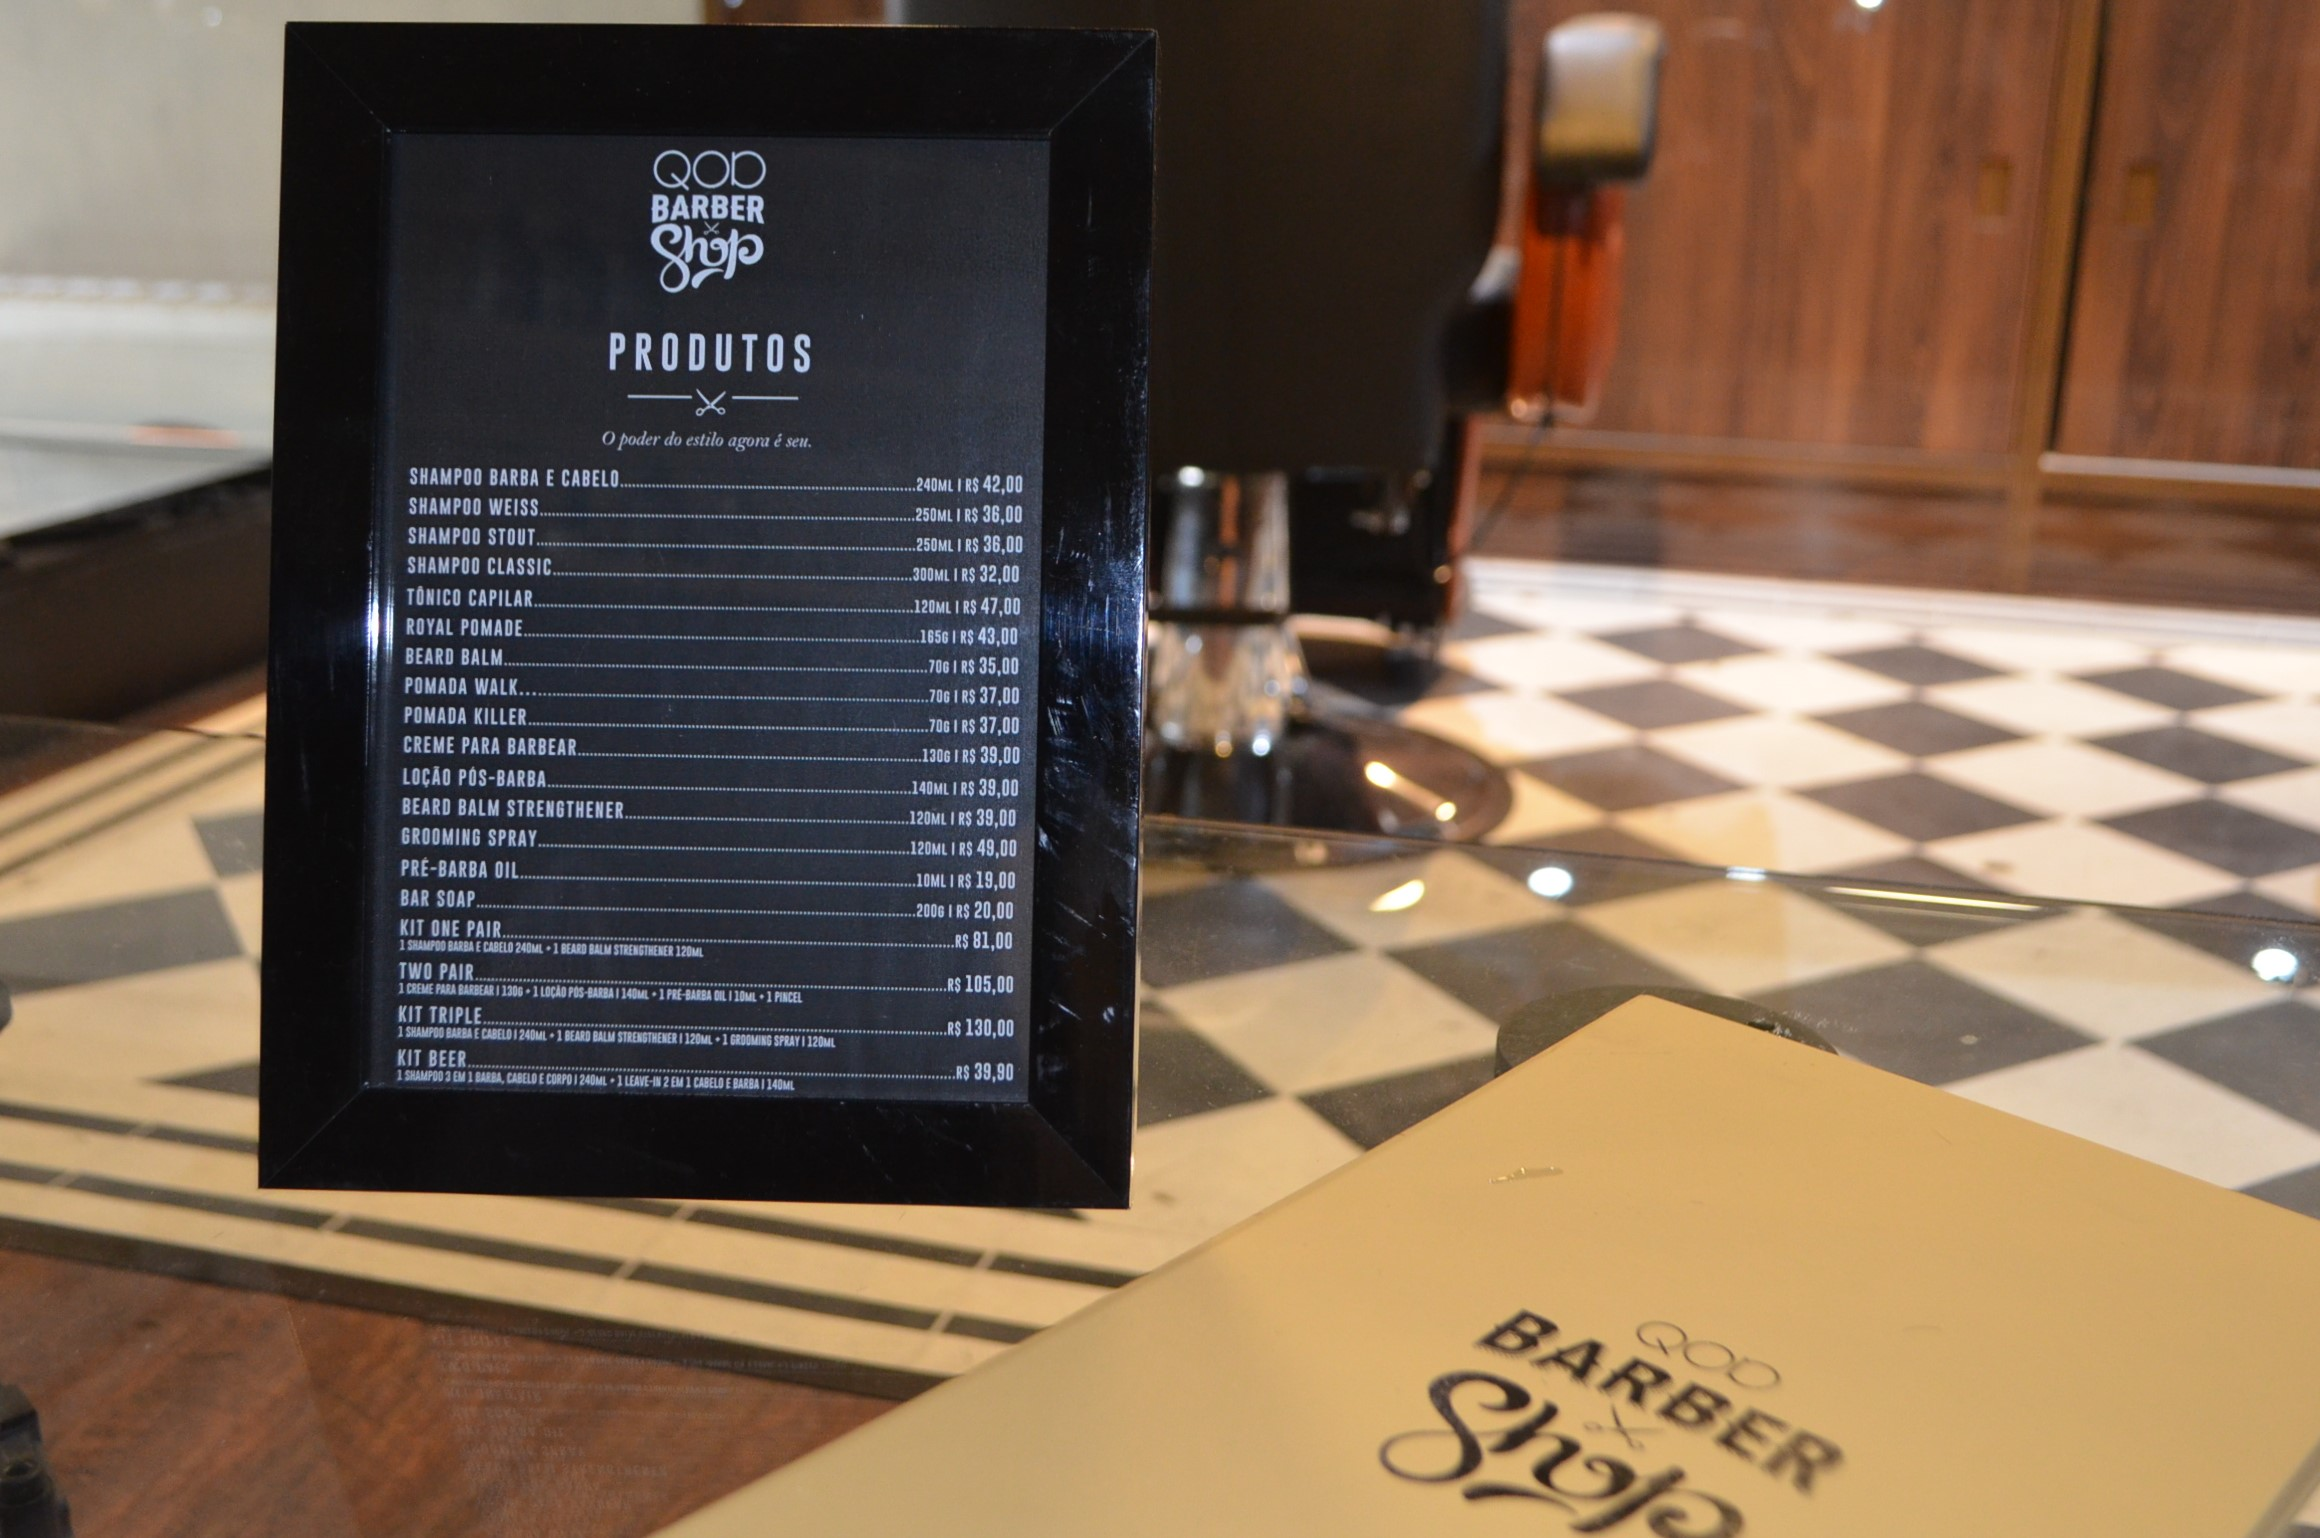 QOD-Barber-Shop-Novo-Hamburgo